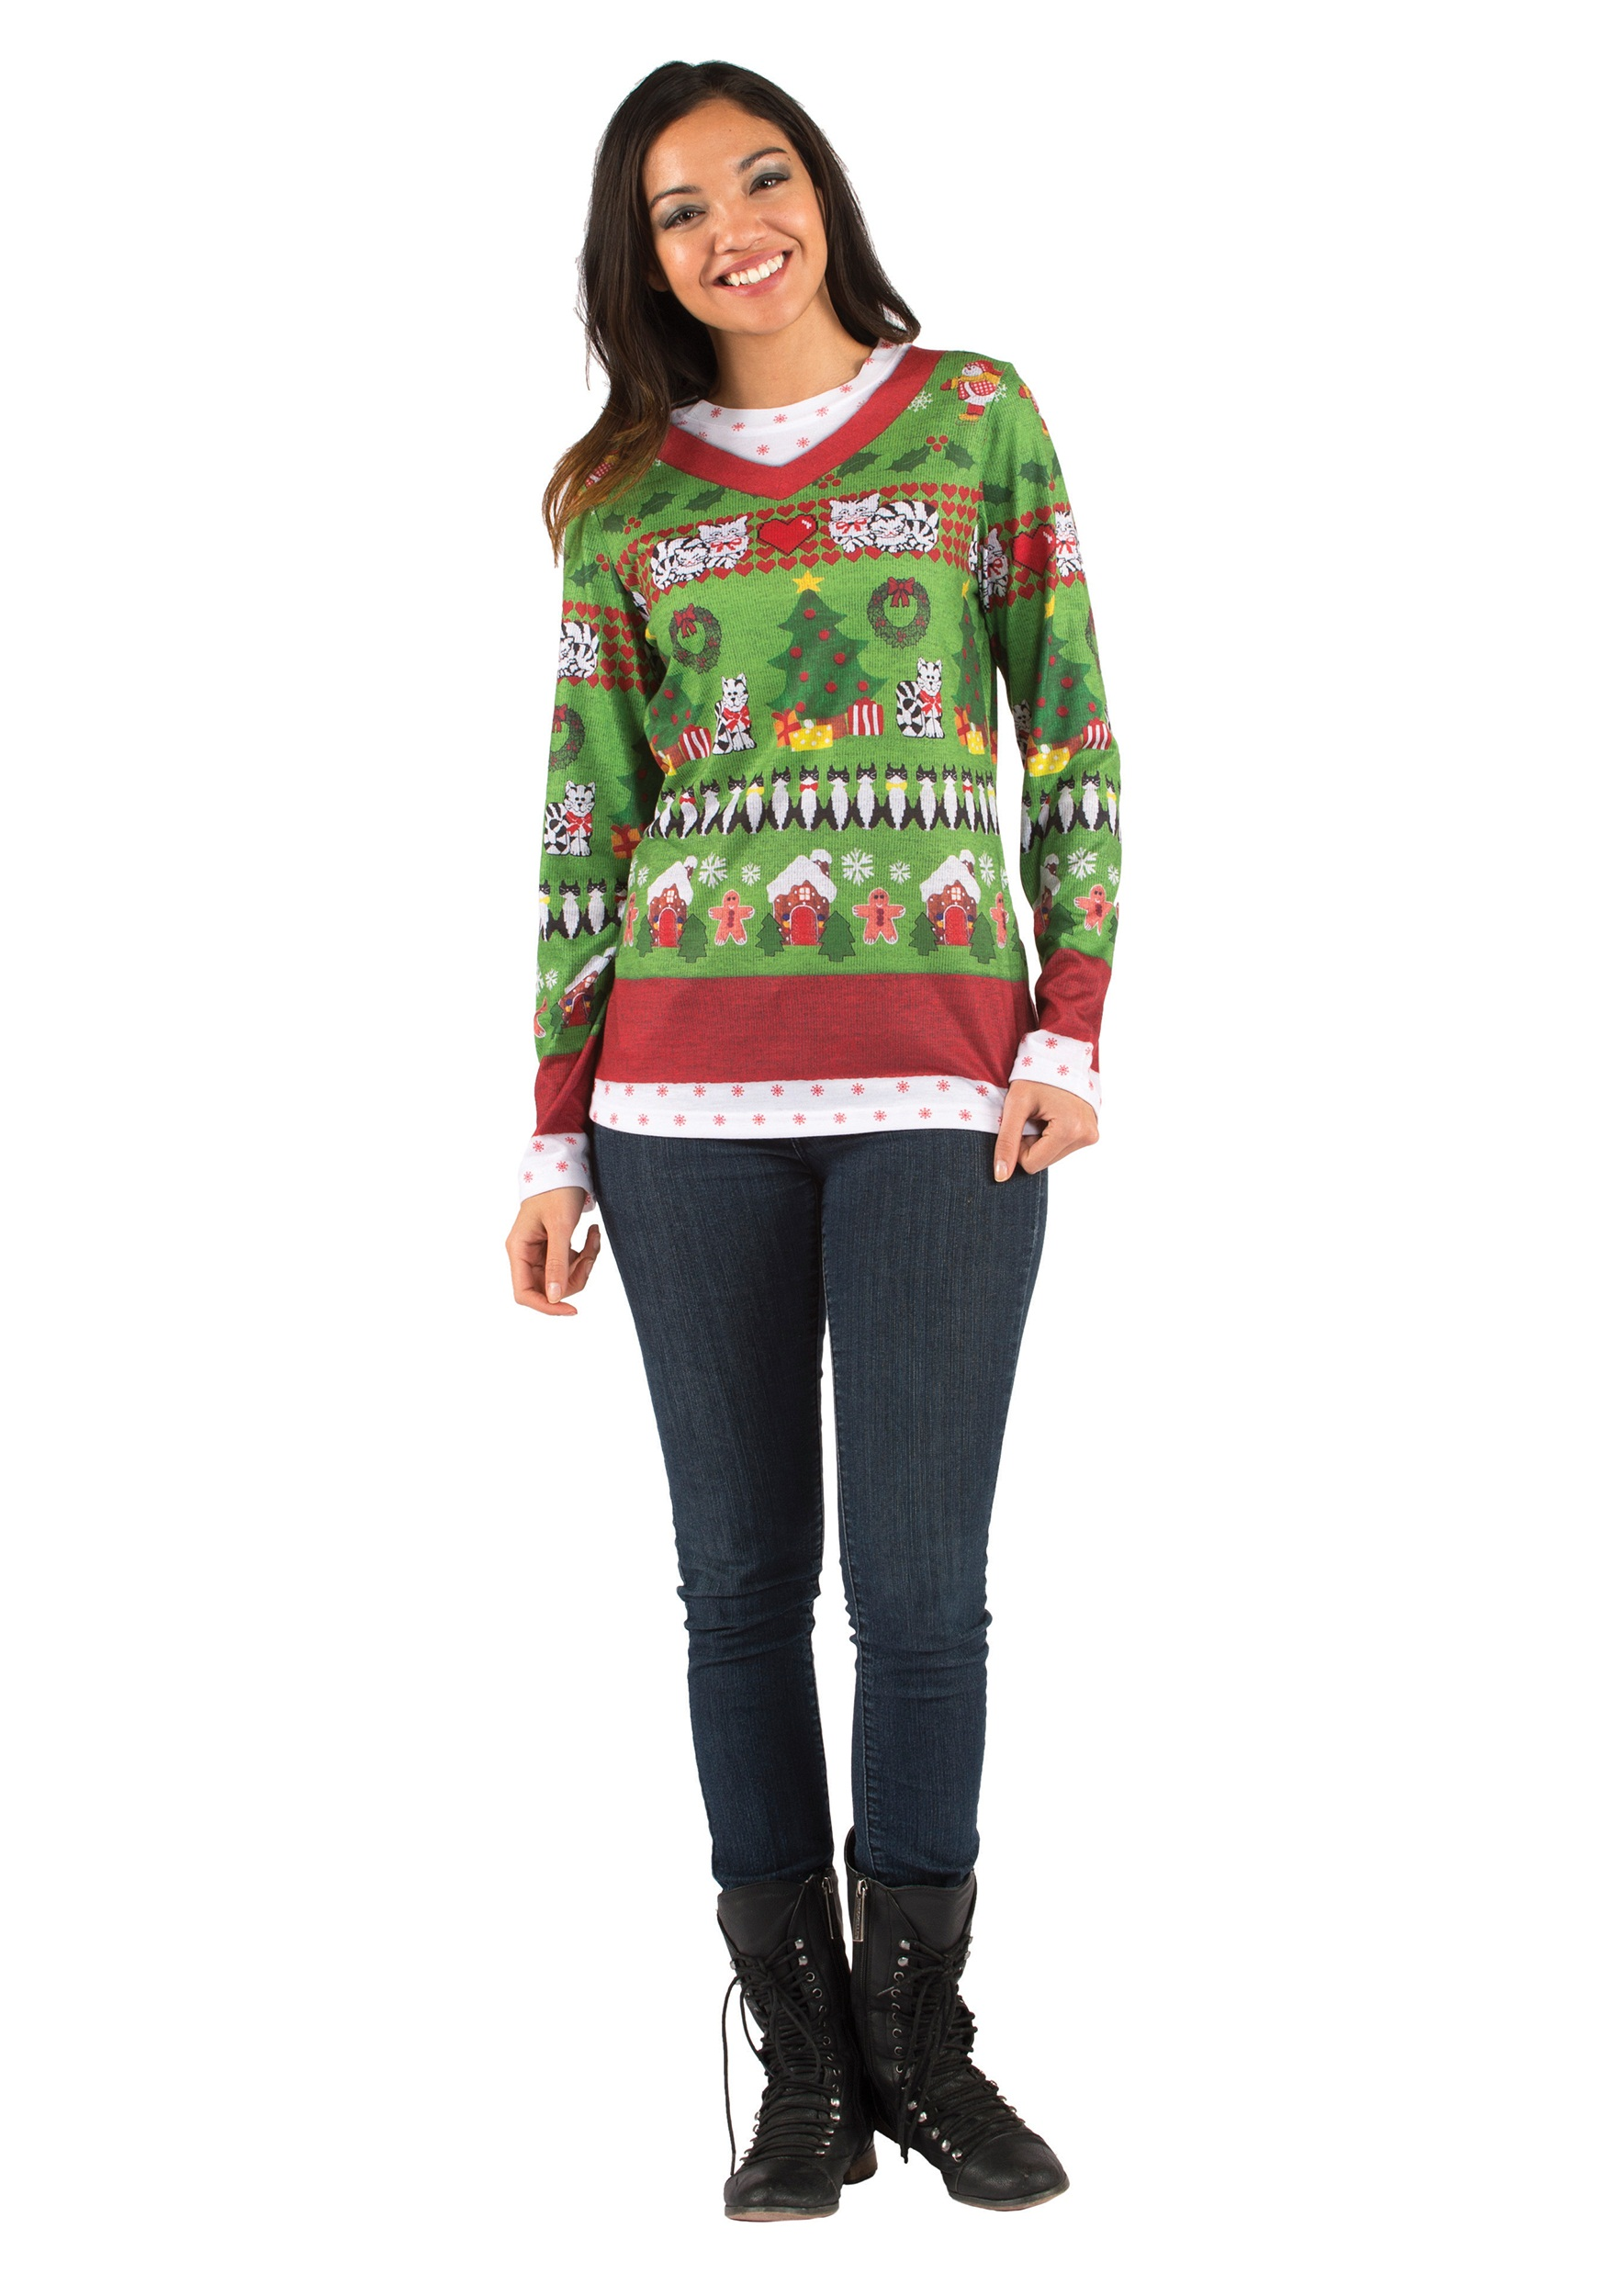 Adult Ugly Sweater Shirt with Cats